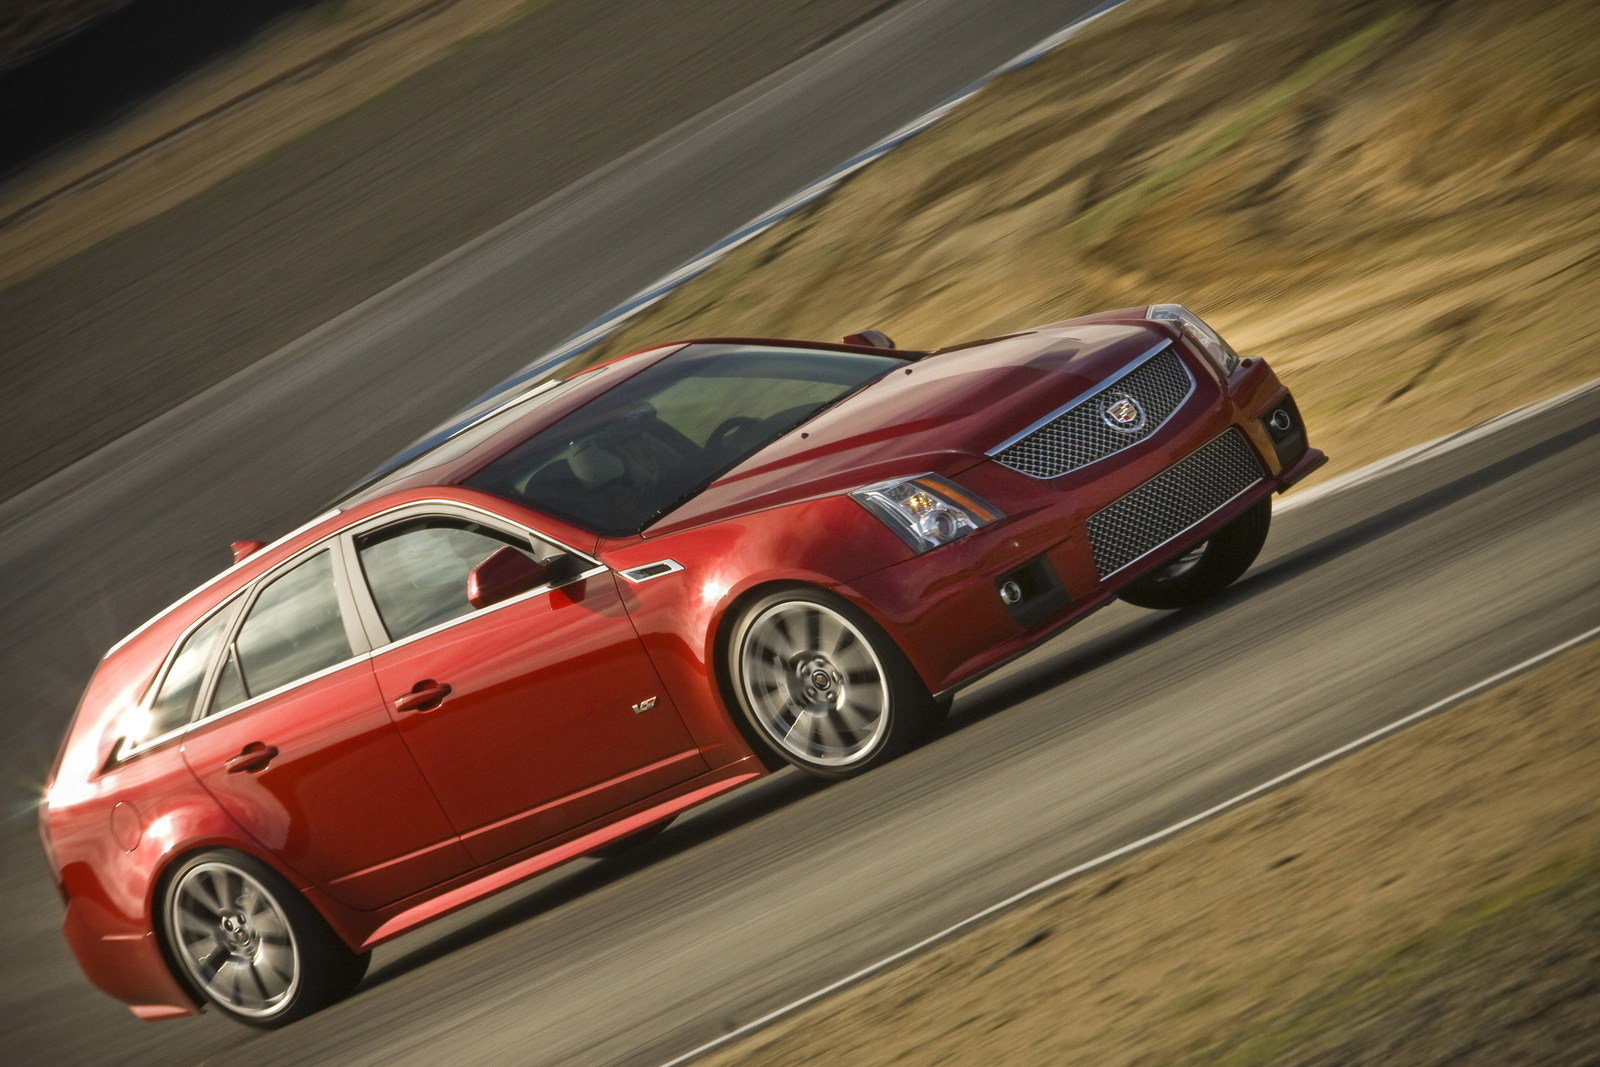 2014 cadillac cts v wagon picture 545938 car review top speed. Cars Review. Best American Auto & Cars Review